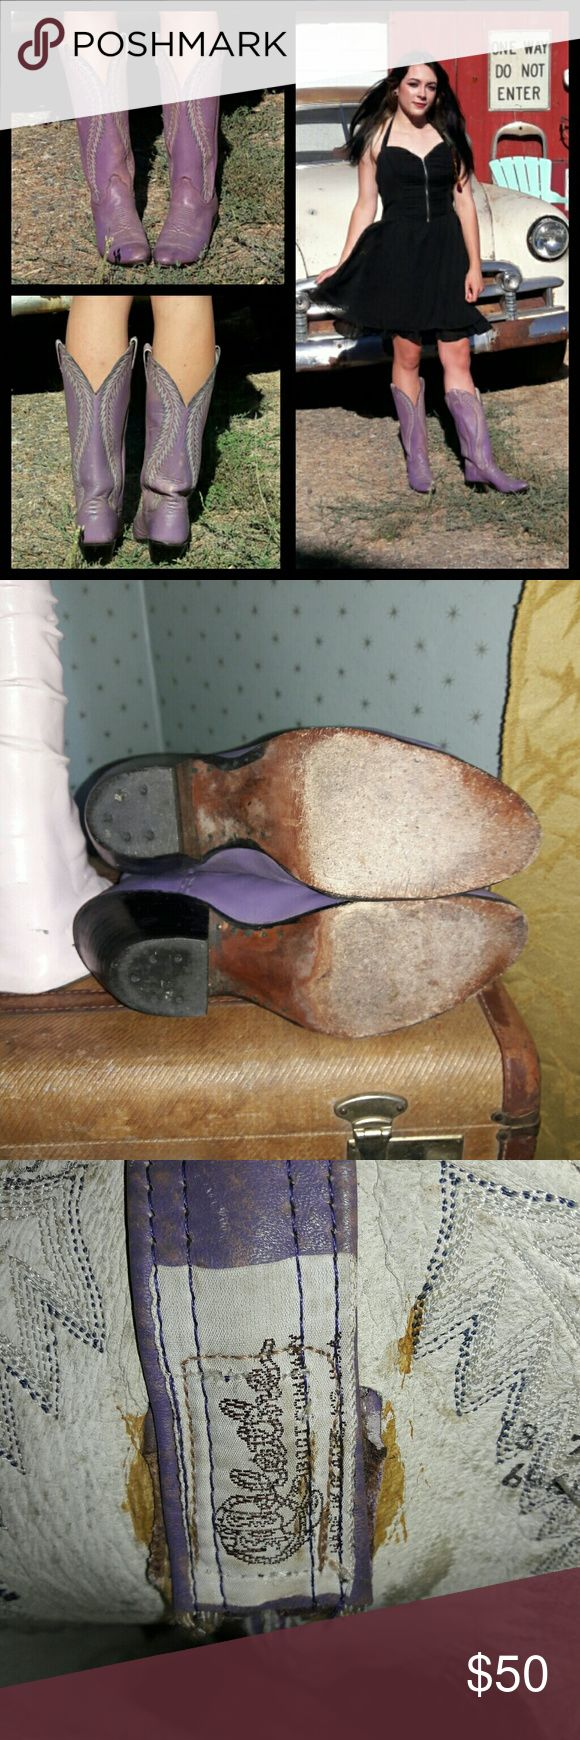 Vintage Olathe purple tall cowboy boots! Awesome! Vintage purple Lavendar cowboy boots size 7.5. These boots have been around the block! They are in rough vintage shape but very wearable! Worn in and soles still have lots of life in them. The color is fabulous! There are some areas in the boots that have staining and discoloration, most likely from cleaning out the horse stalls! I think it only adds to their charm. These boots are the real deal! olathe Shoes